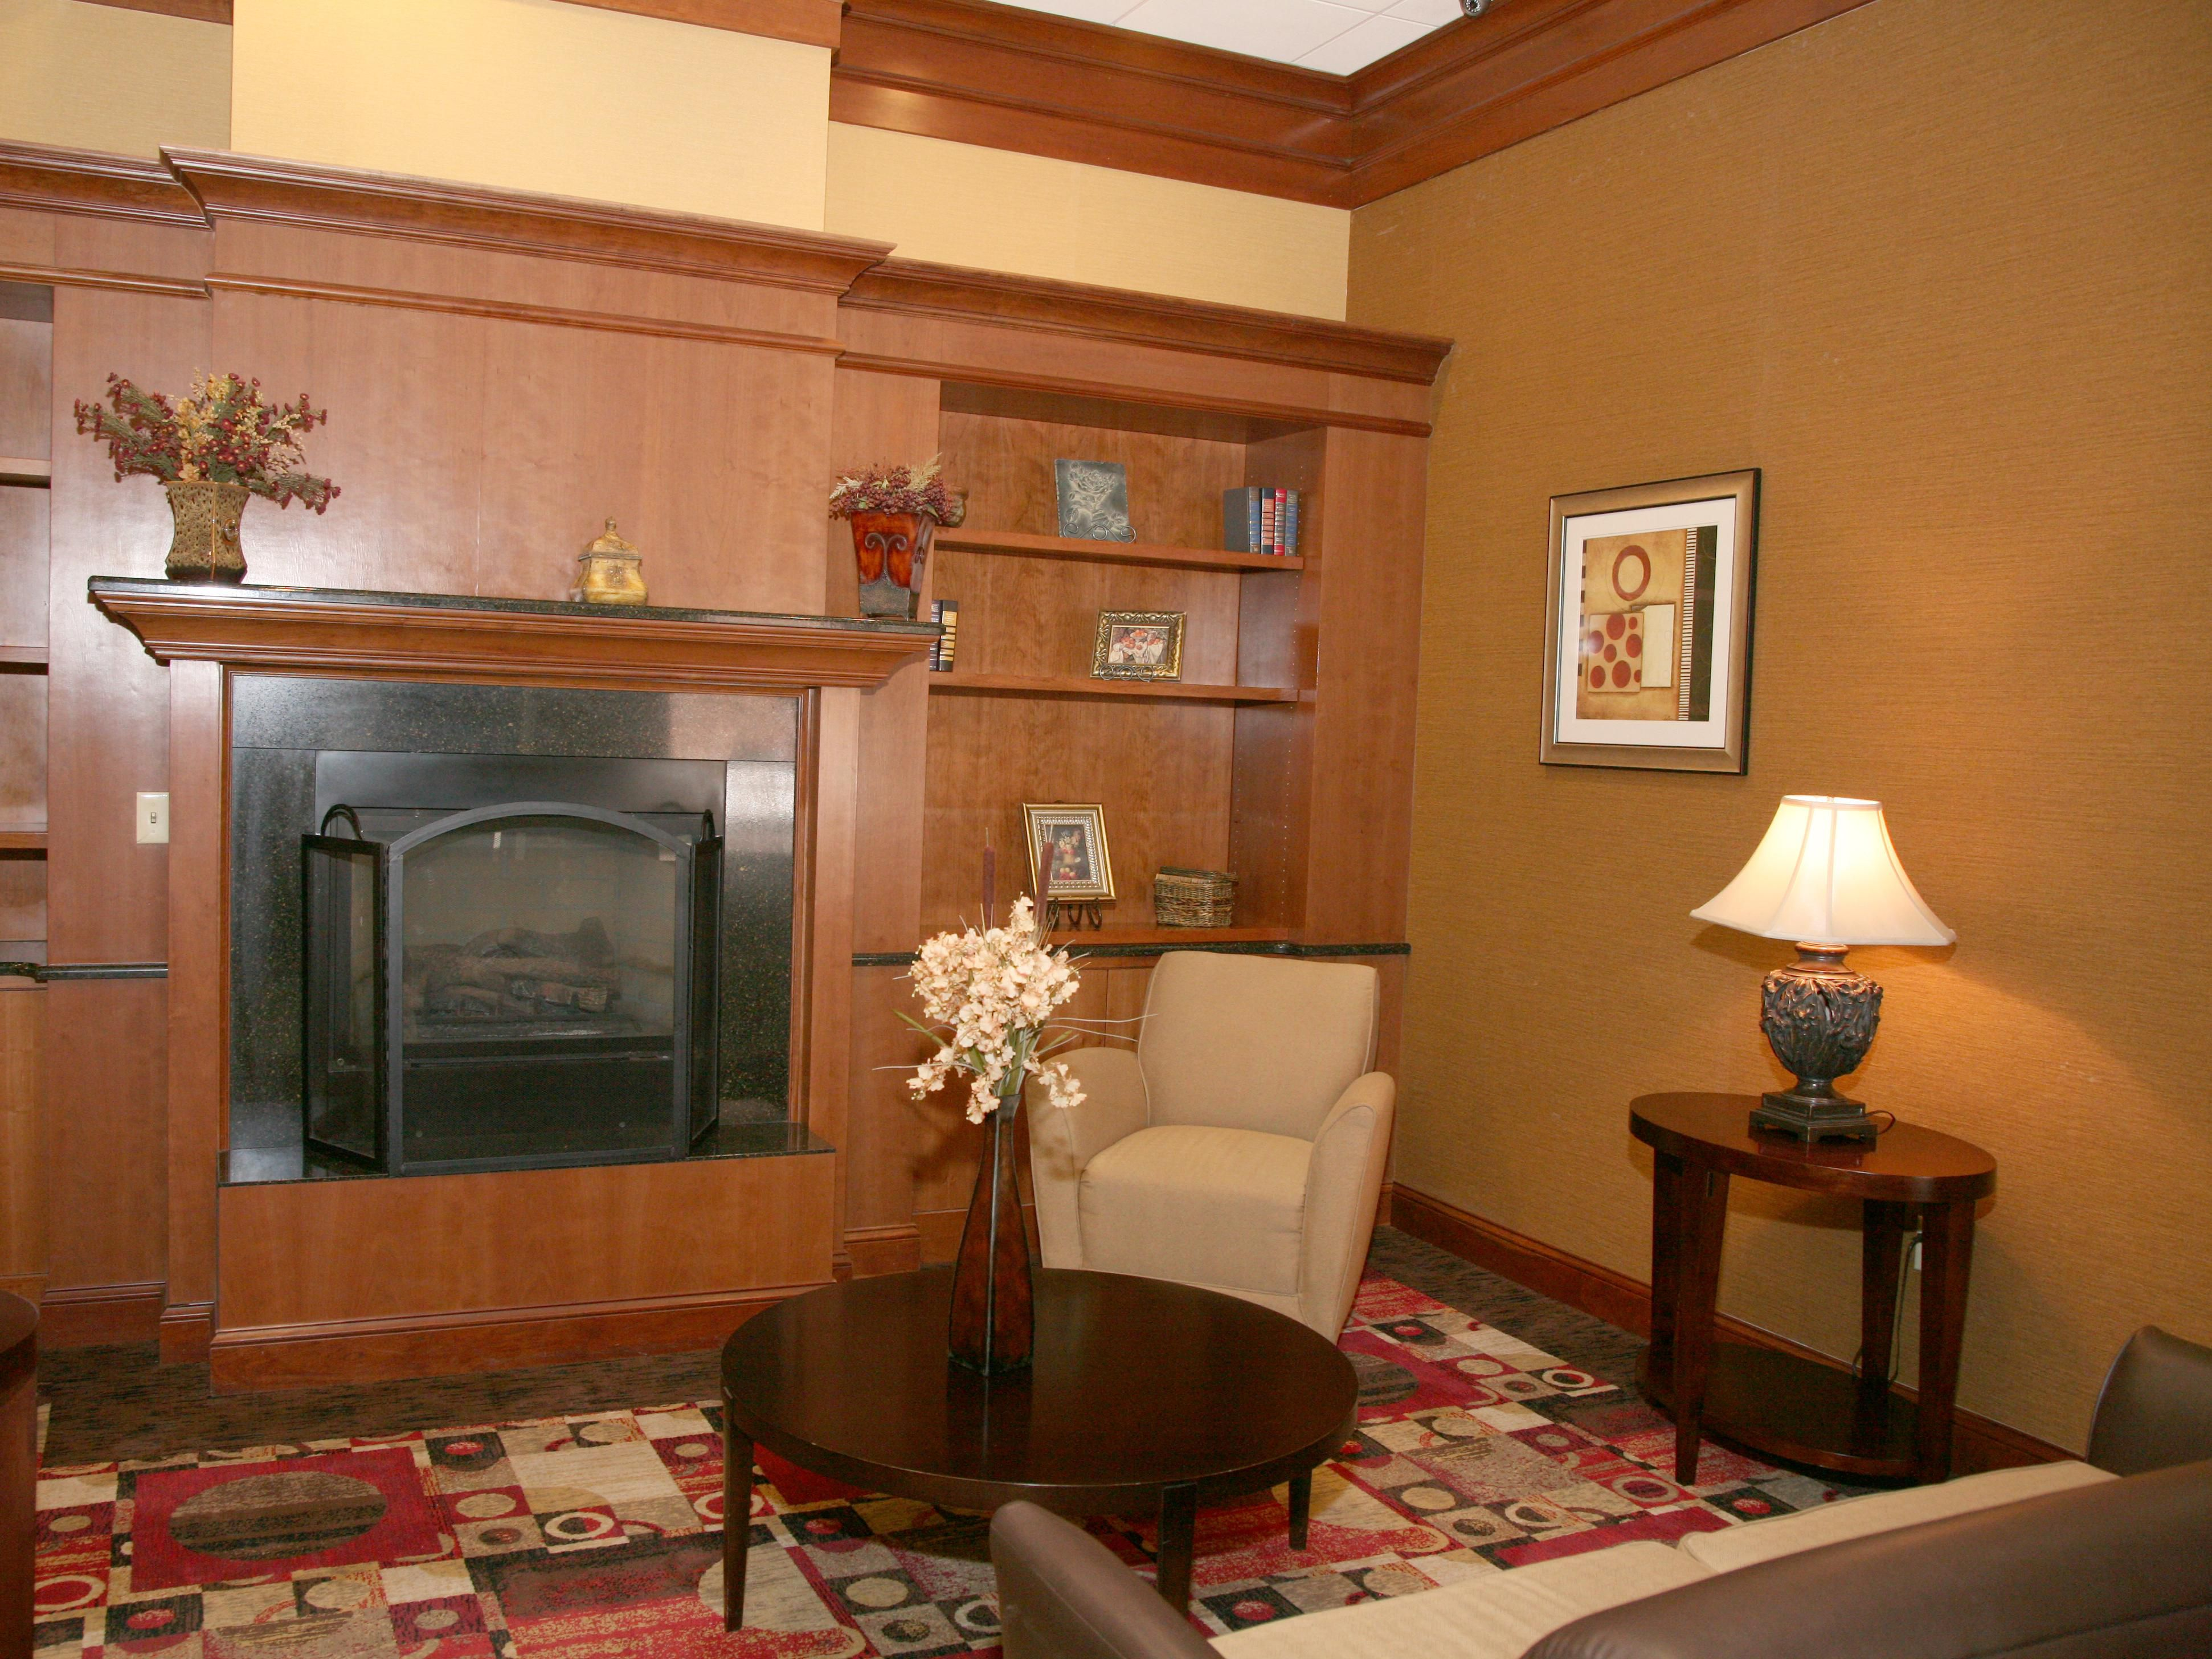 Fireplace and Seating Area in Main Lobby